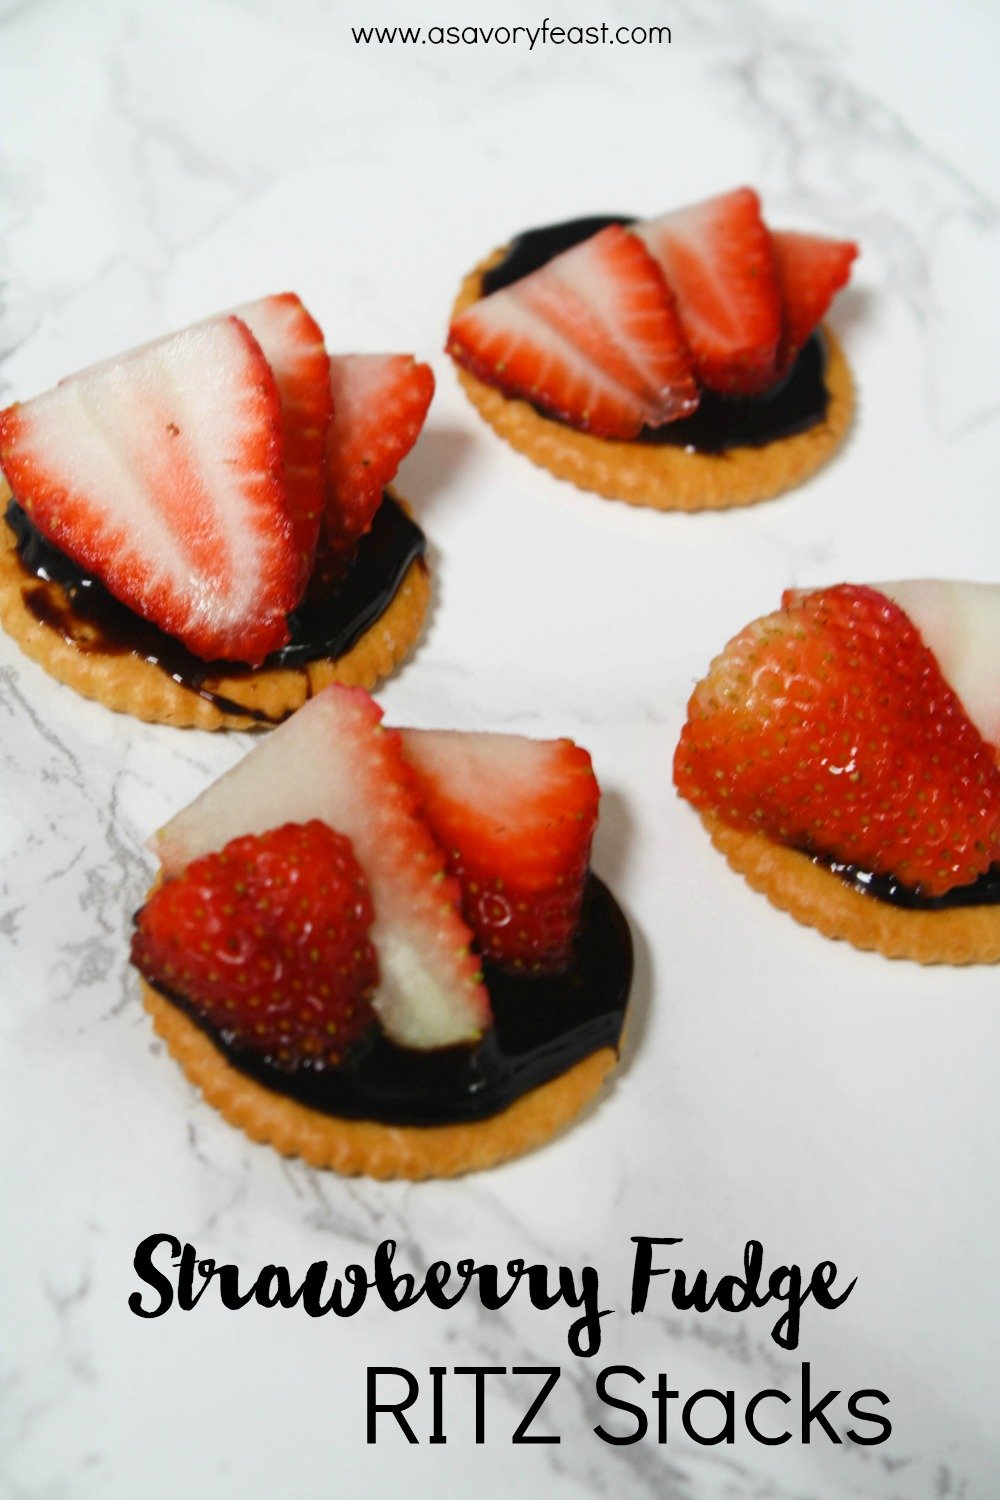 Strawberry Fudge RITZ Stacks are a fun and easy snack idea!